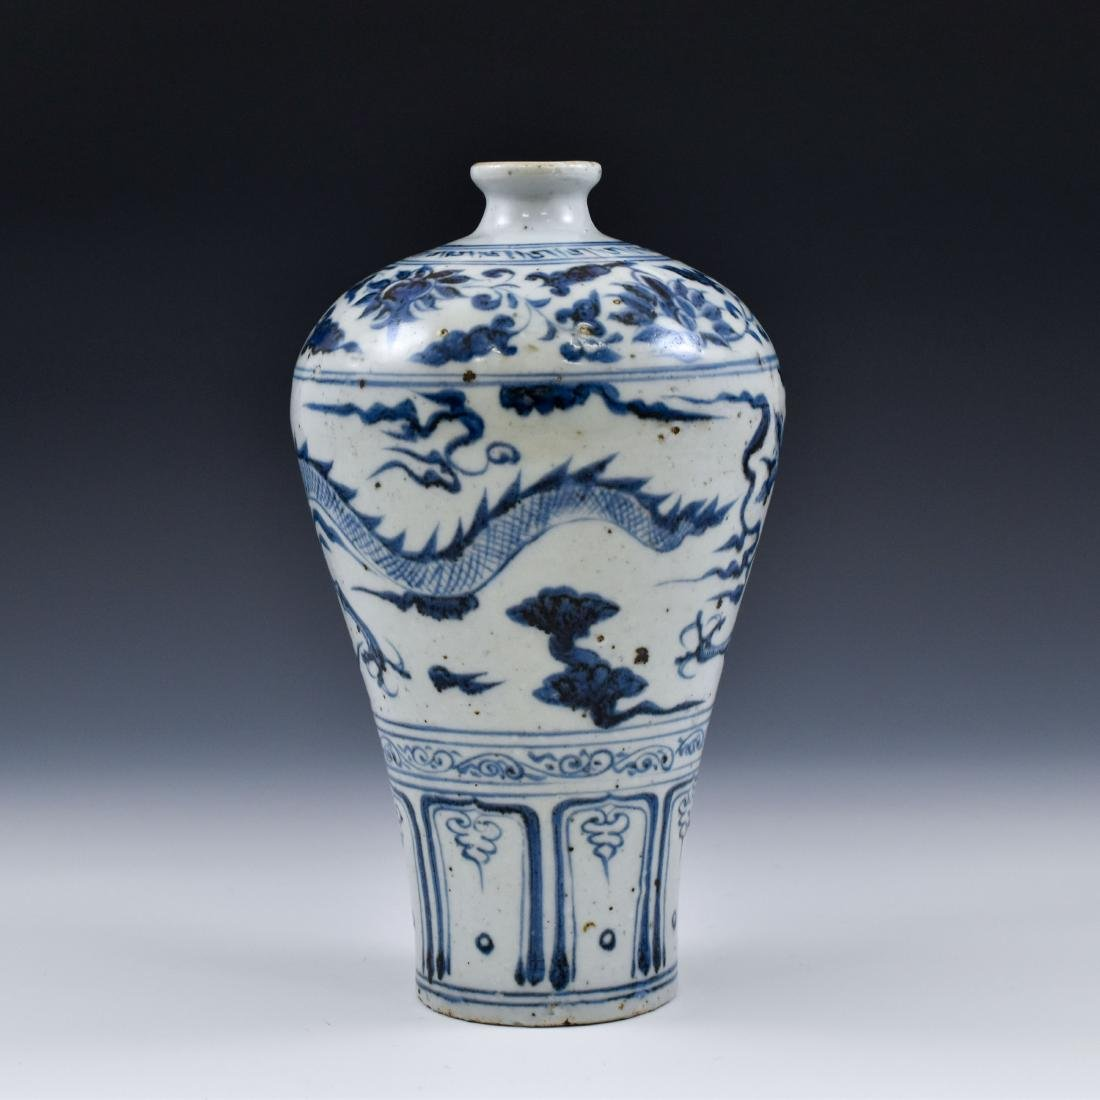 YUAN CHINESE BLUE & WHITE DRAGON MEIPING VASE - 2